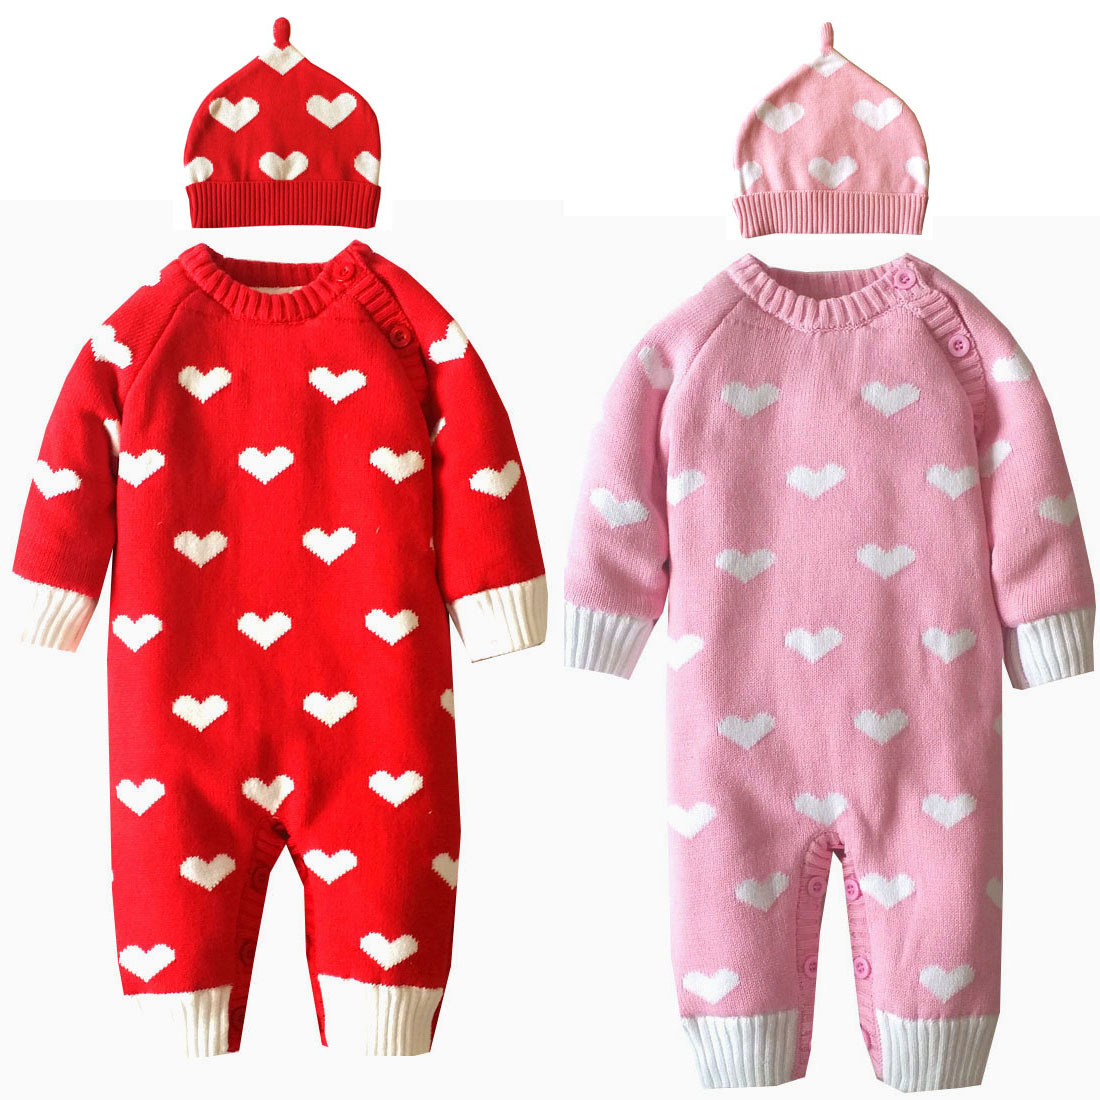 Baby Rompers Winter Thick Climbing Clothes Newborn Boy Girls Warm Romper Knitted Sweater Christmas Heart Hooded Outwear with Hat winter baby rompers organic cotton baby hooded snowsuit jumpsuit long sleeve thick warm baby girls boy romper newborn clothing